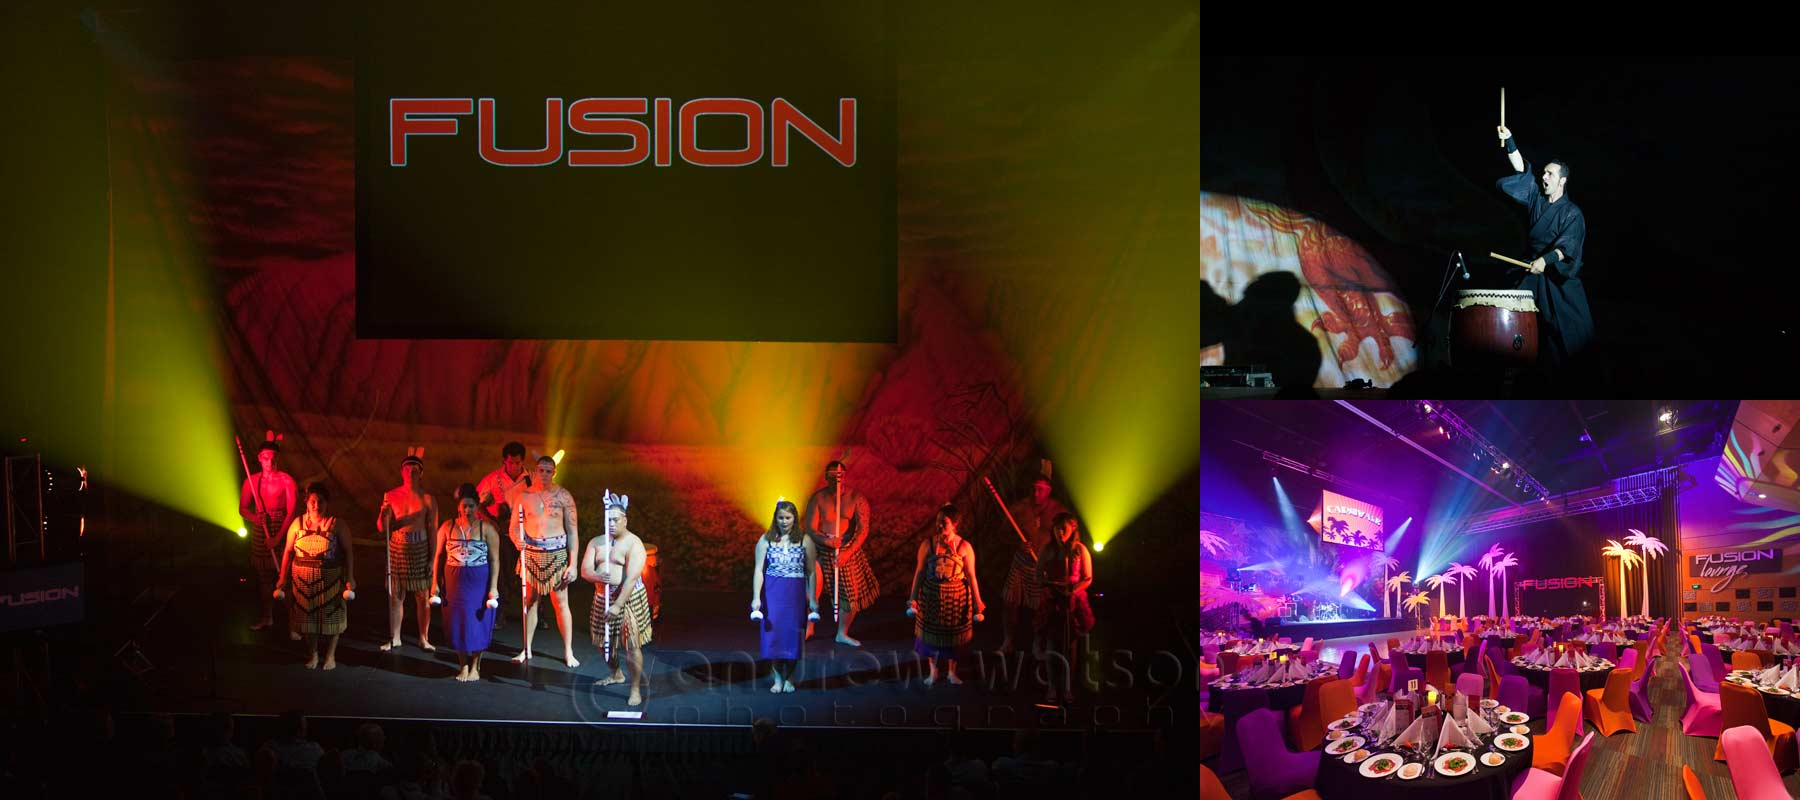 Conference Photography - Images captured at FUSION Conference opening night, Cairns Convention Centre